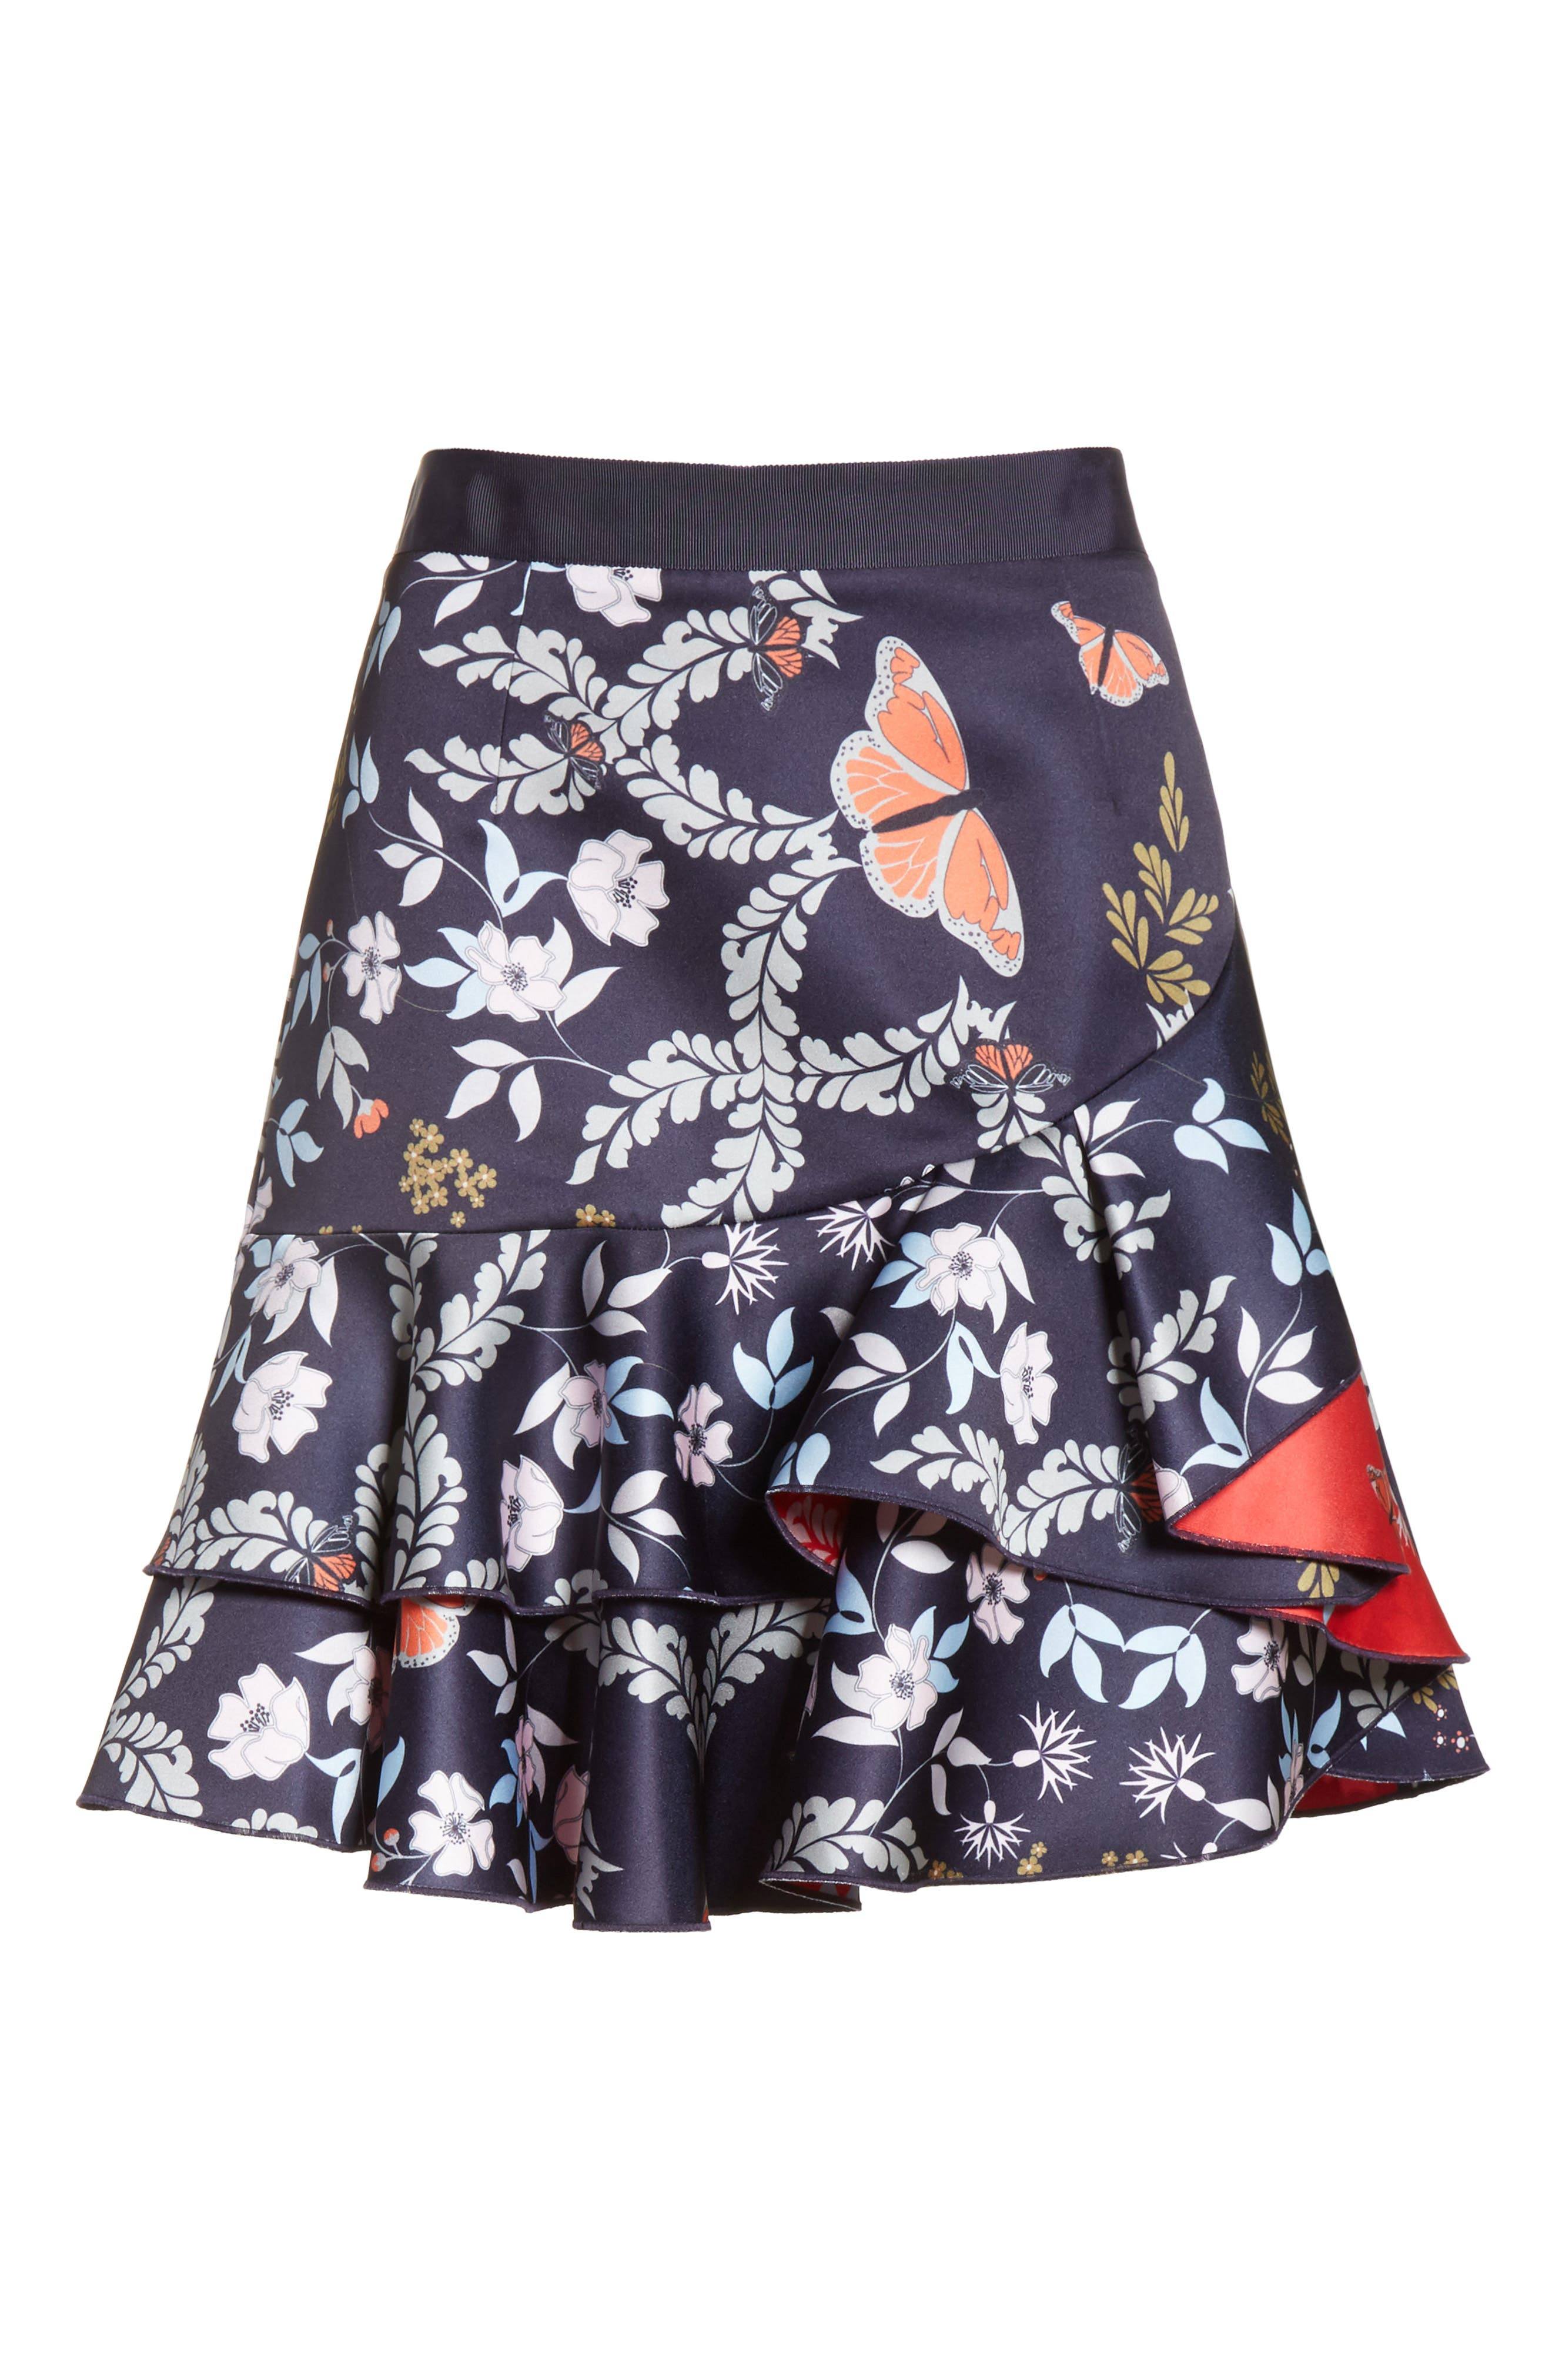 Janesa Kyoto Print Ruffle Skirt,                             Alternate thumbnail 6, color,                             424